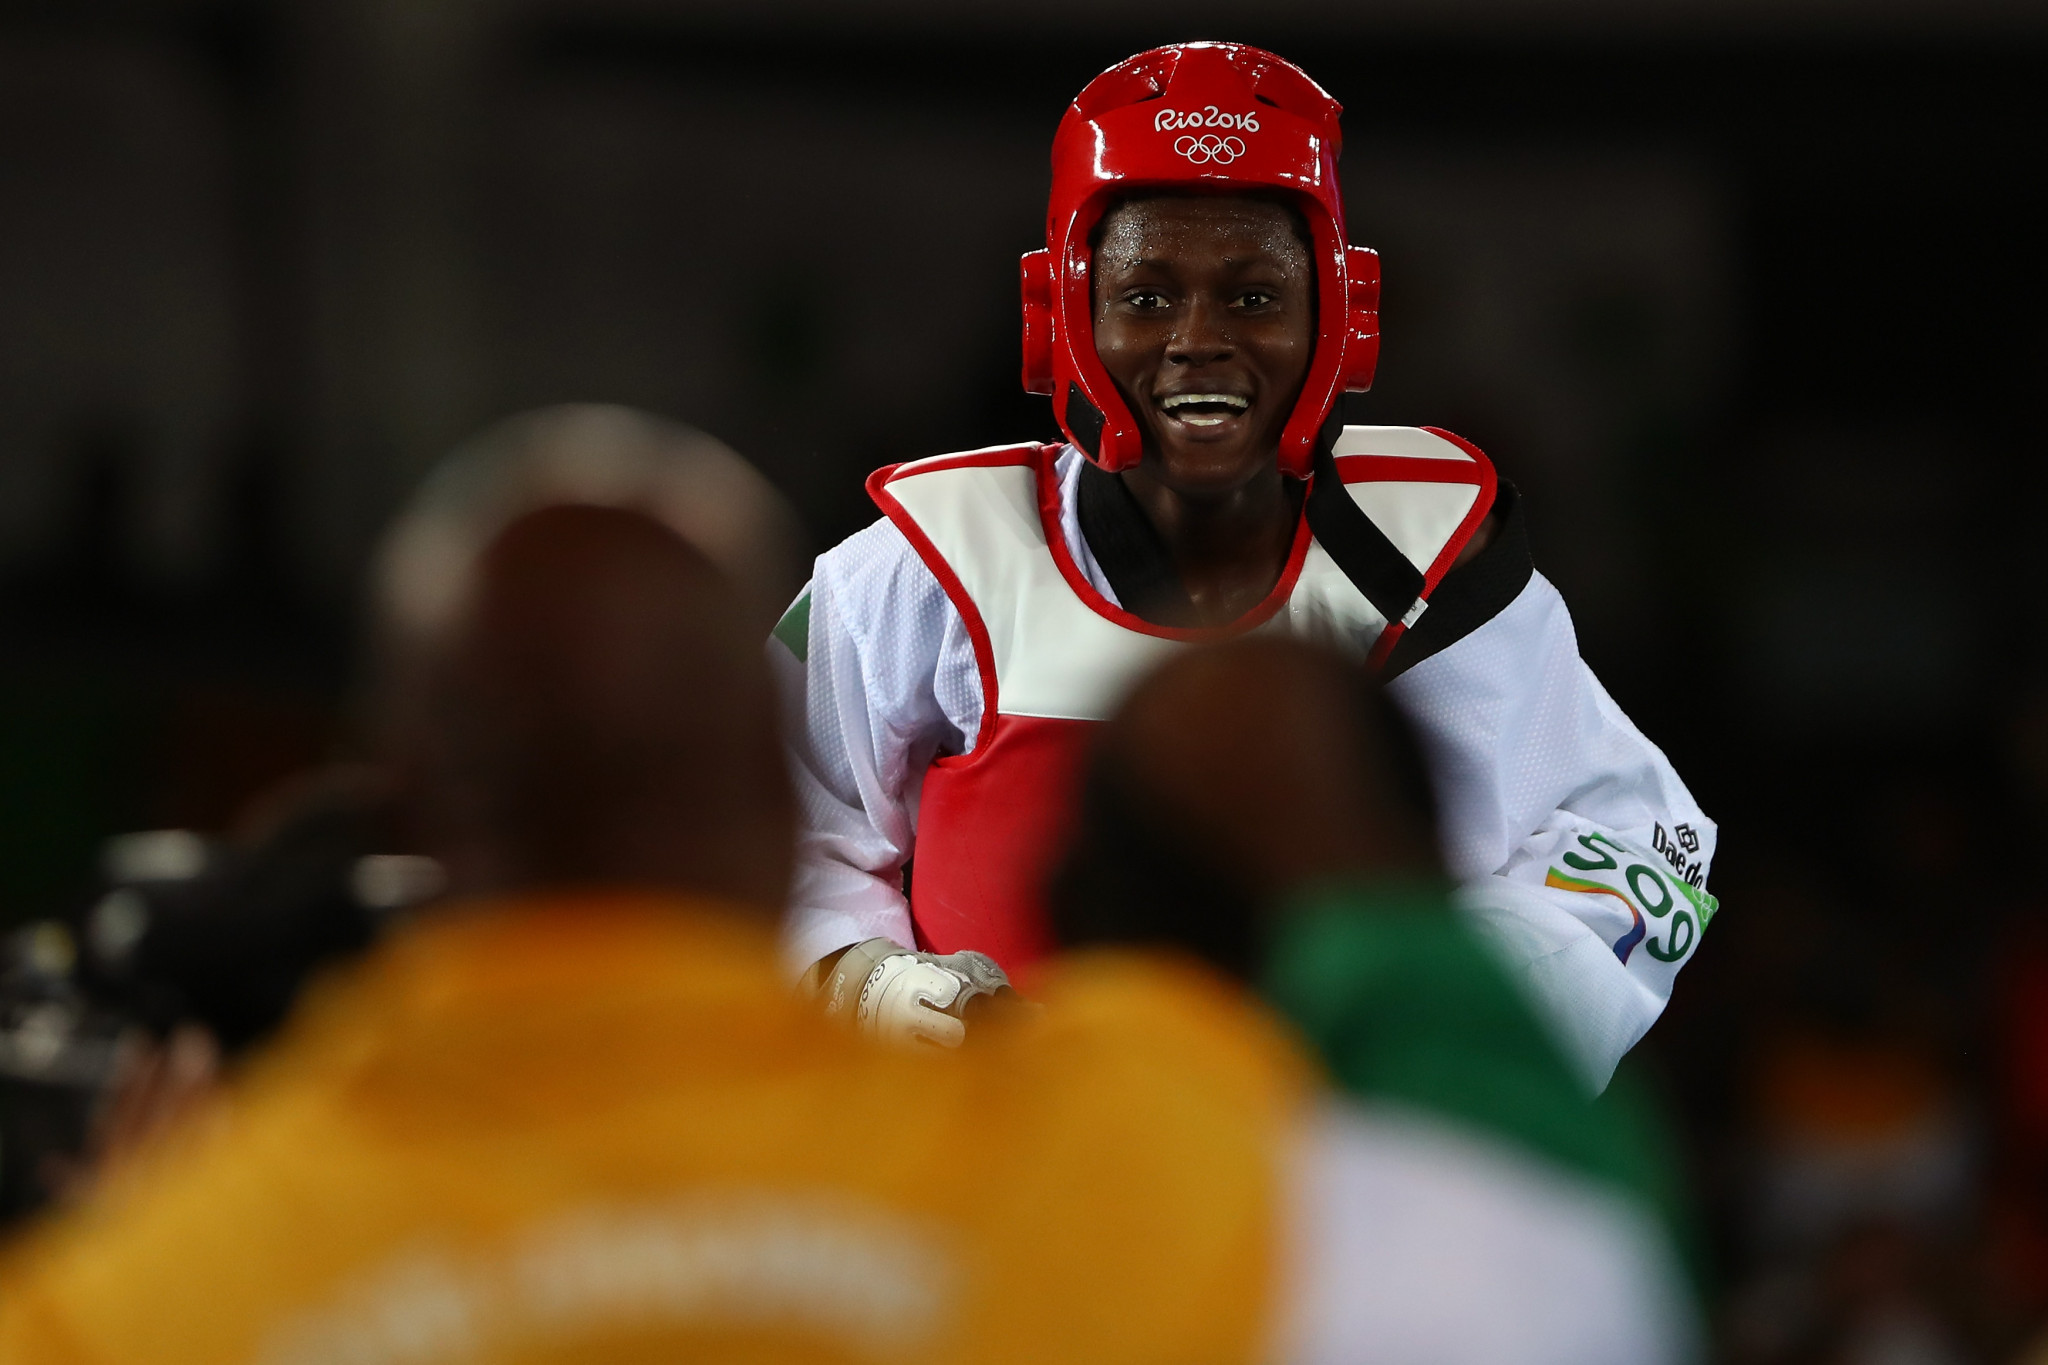 Ivorian Taekwondo Federation planning to send Olympic athletes to Europe